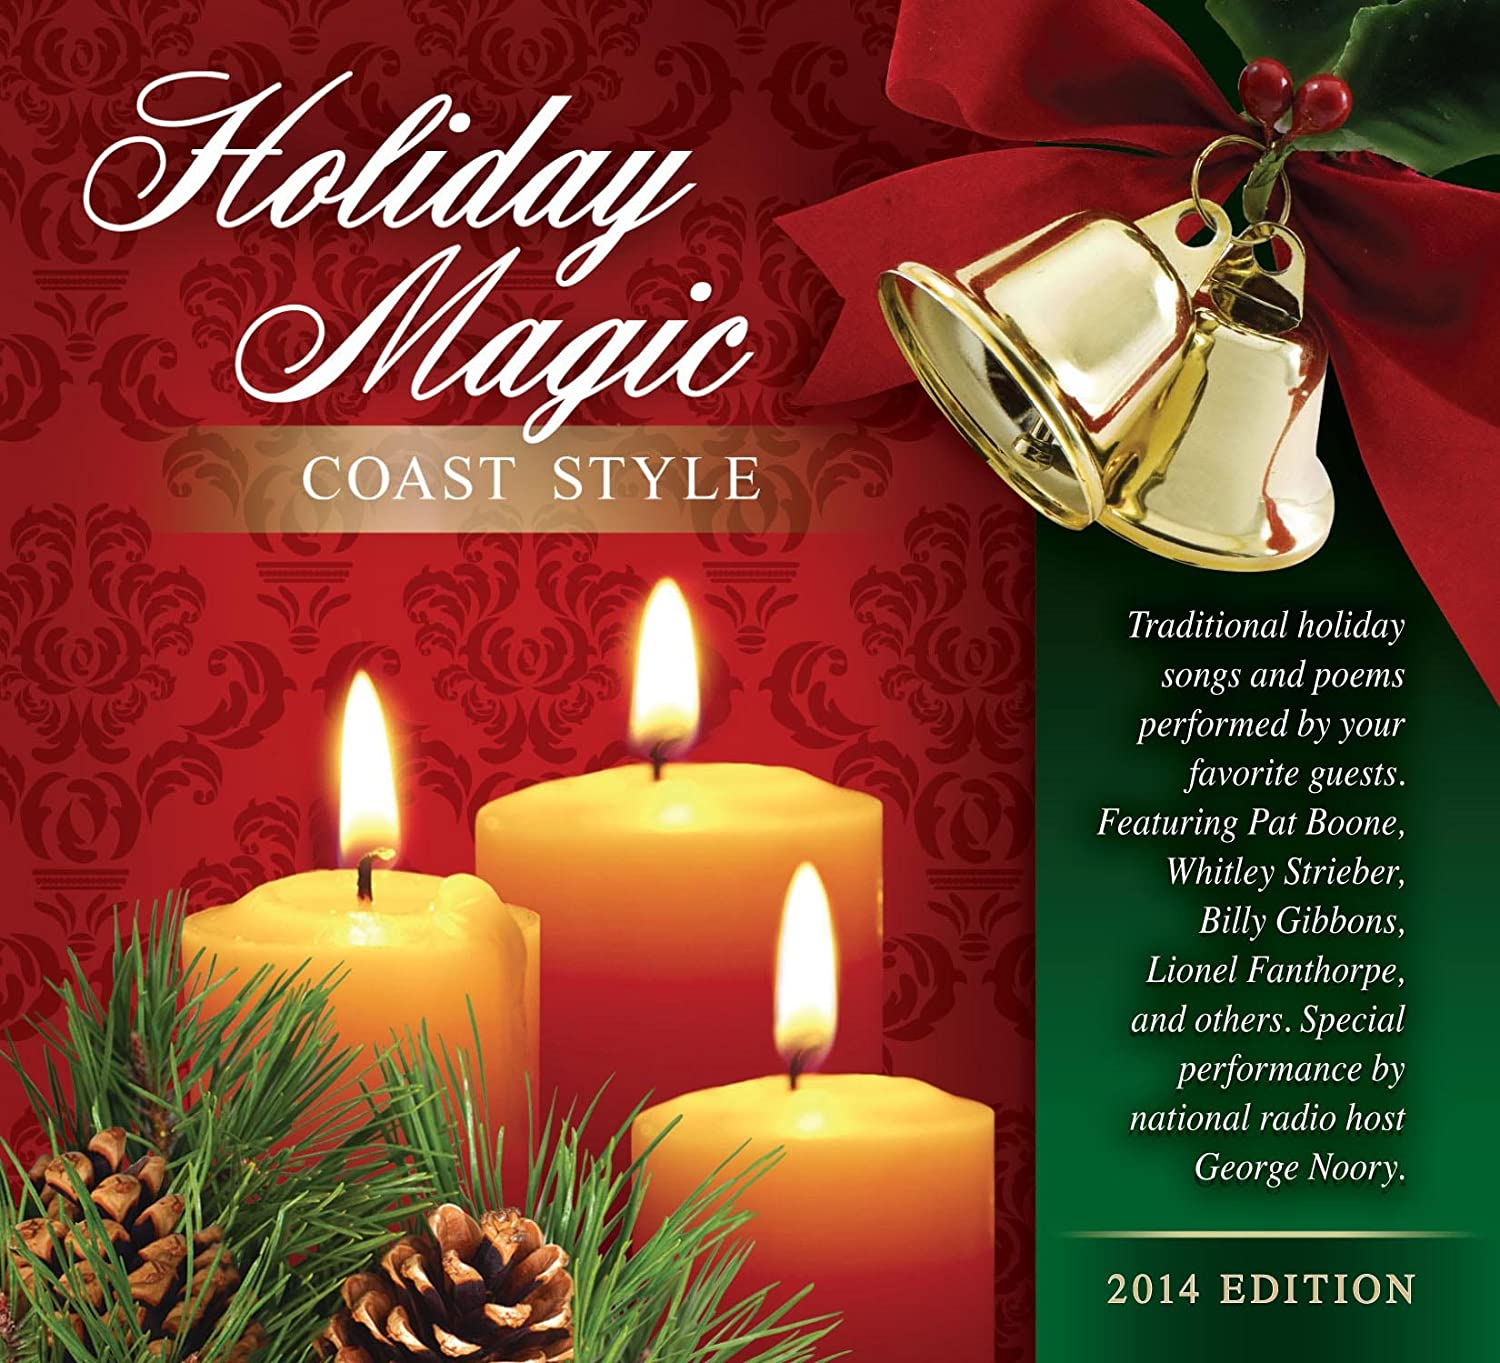 Traditional holiday songs and poems performed by your favorite coast traditional holiday songs and poems performed by your favorite coast to coast am guests holiday magic coast style cd amazon music kristyandbryce Image collections